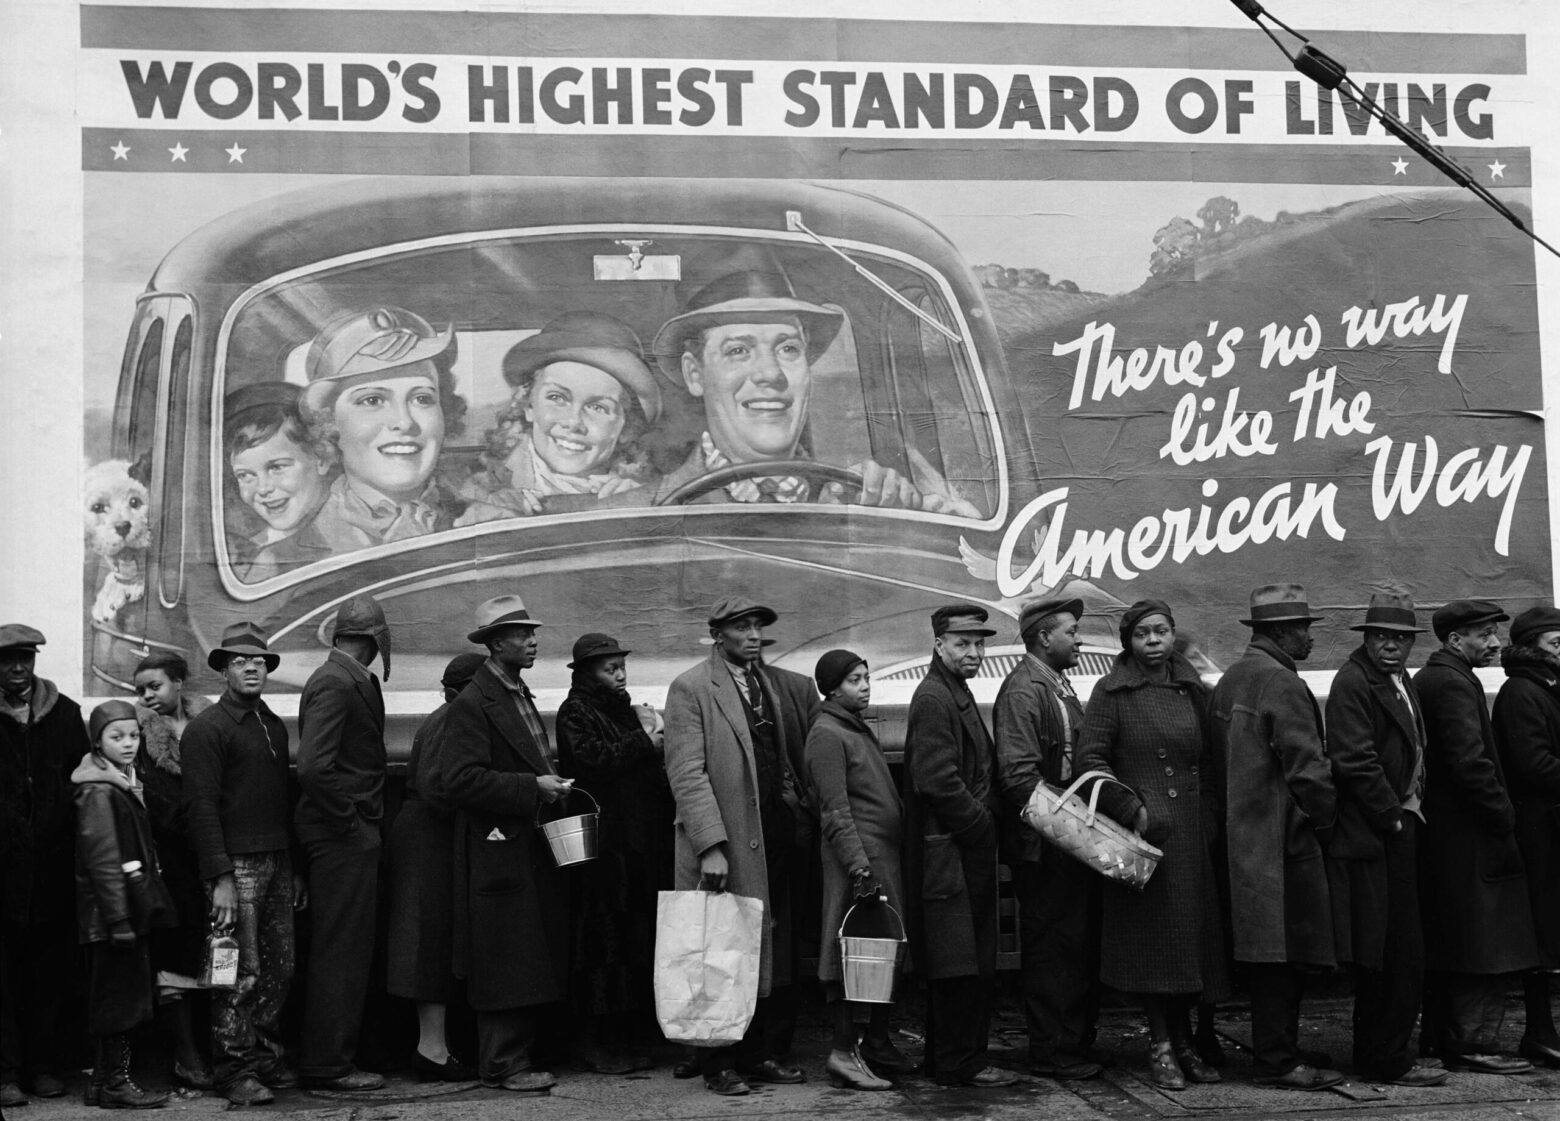 Louis Ville, Kentucky, 1937. © Images by Margaret Bourke-White. 1937 The Picture Collection Inc. All rights reserved;